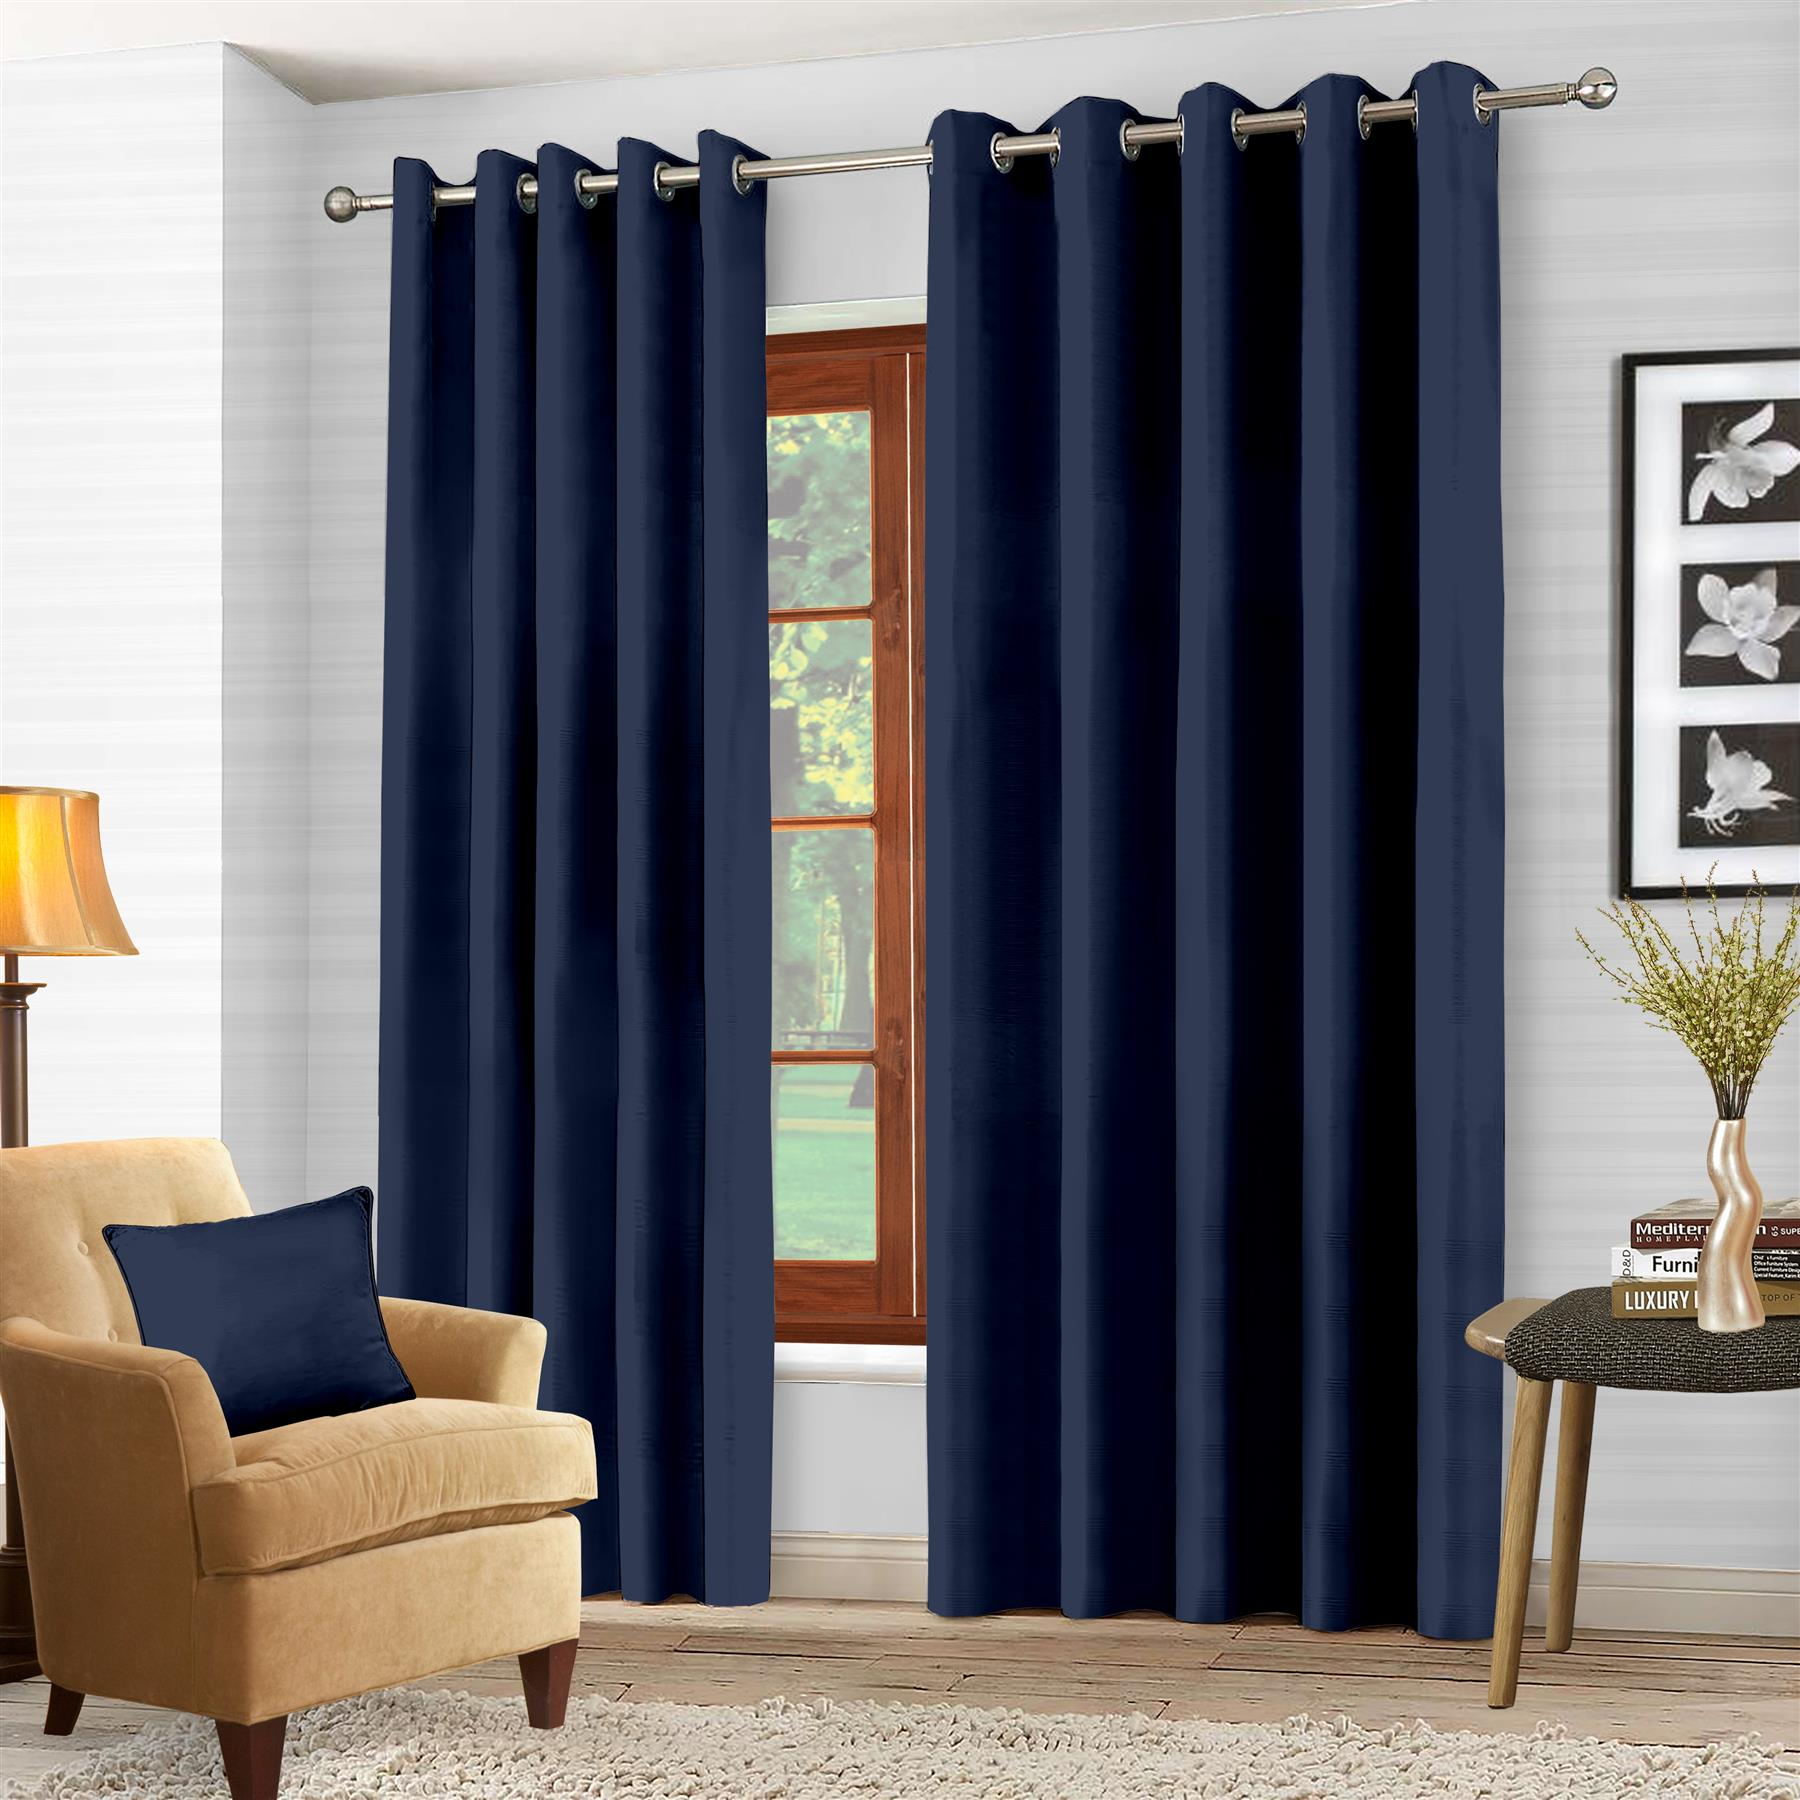 Luxury-Thermal-Blackout-Eyelet-Ring-Top-Curtains-Pair-with-tie-backs thumbnail 27